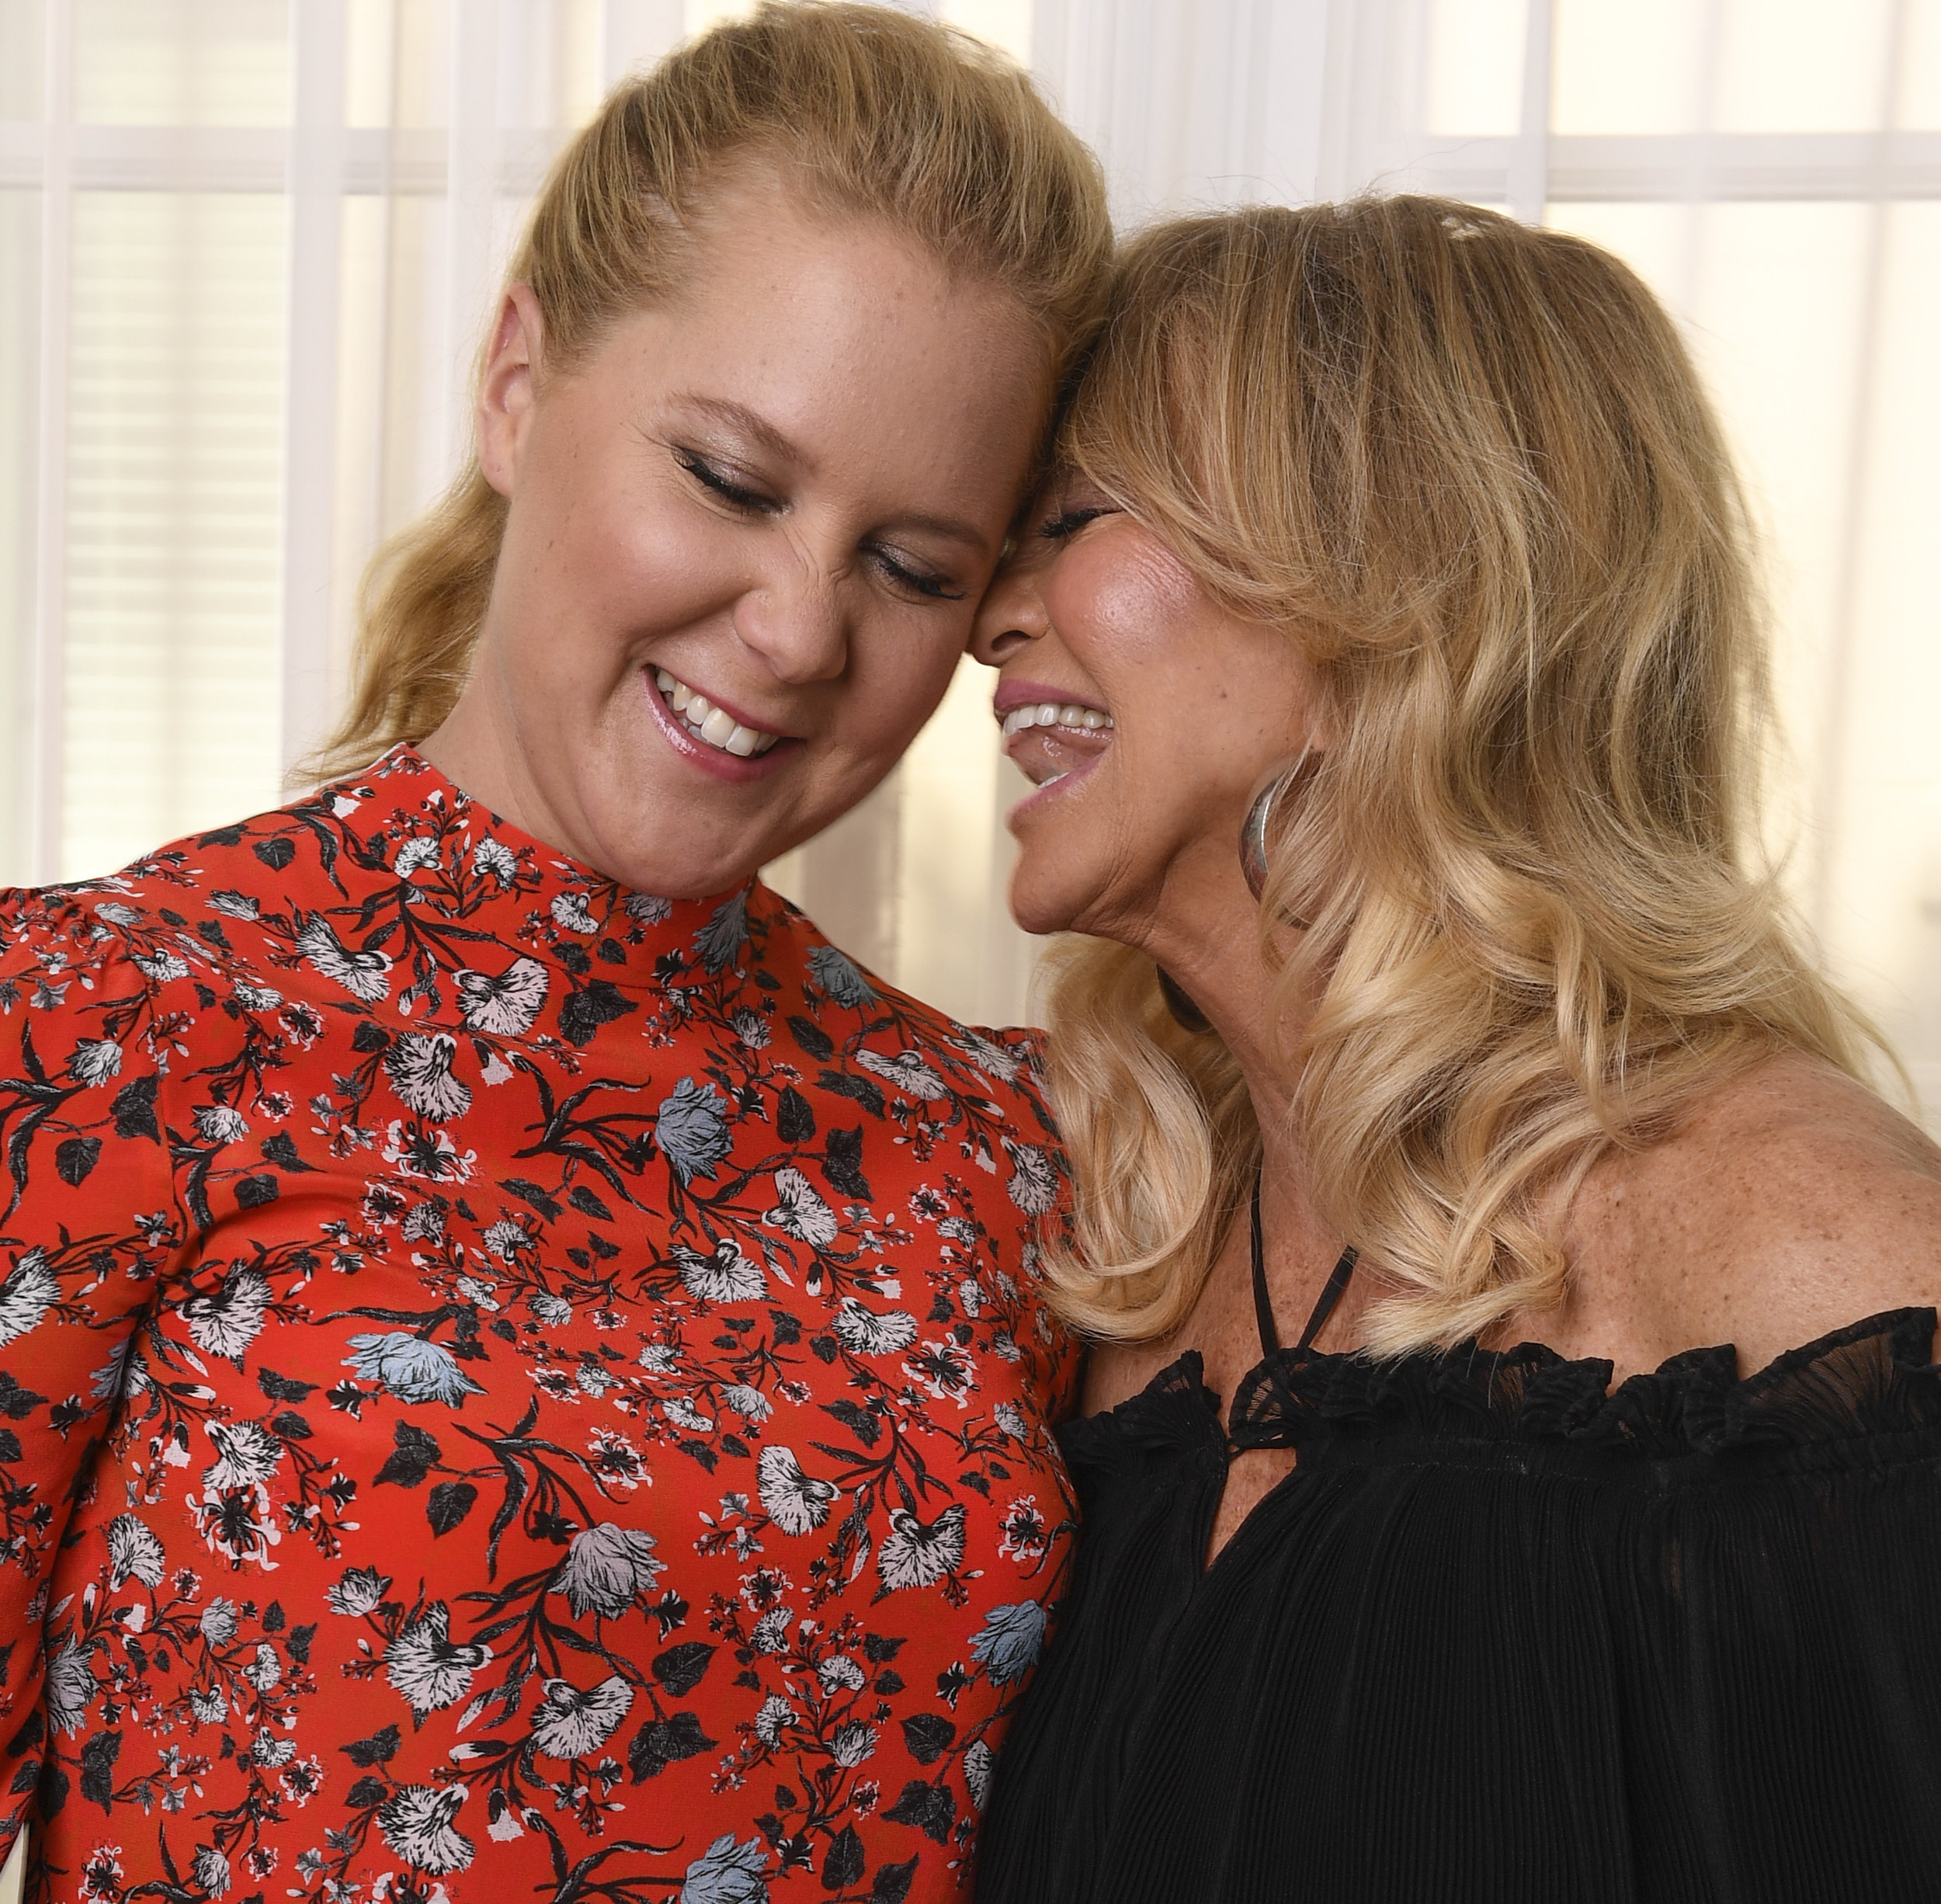 XXX Amy Schumer and Goldie Hawn170_90459498COPY.jpg